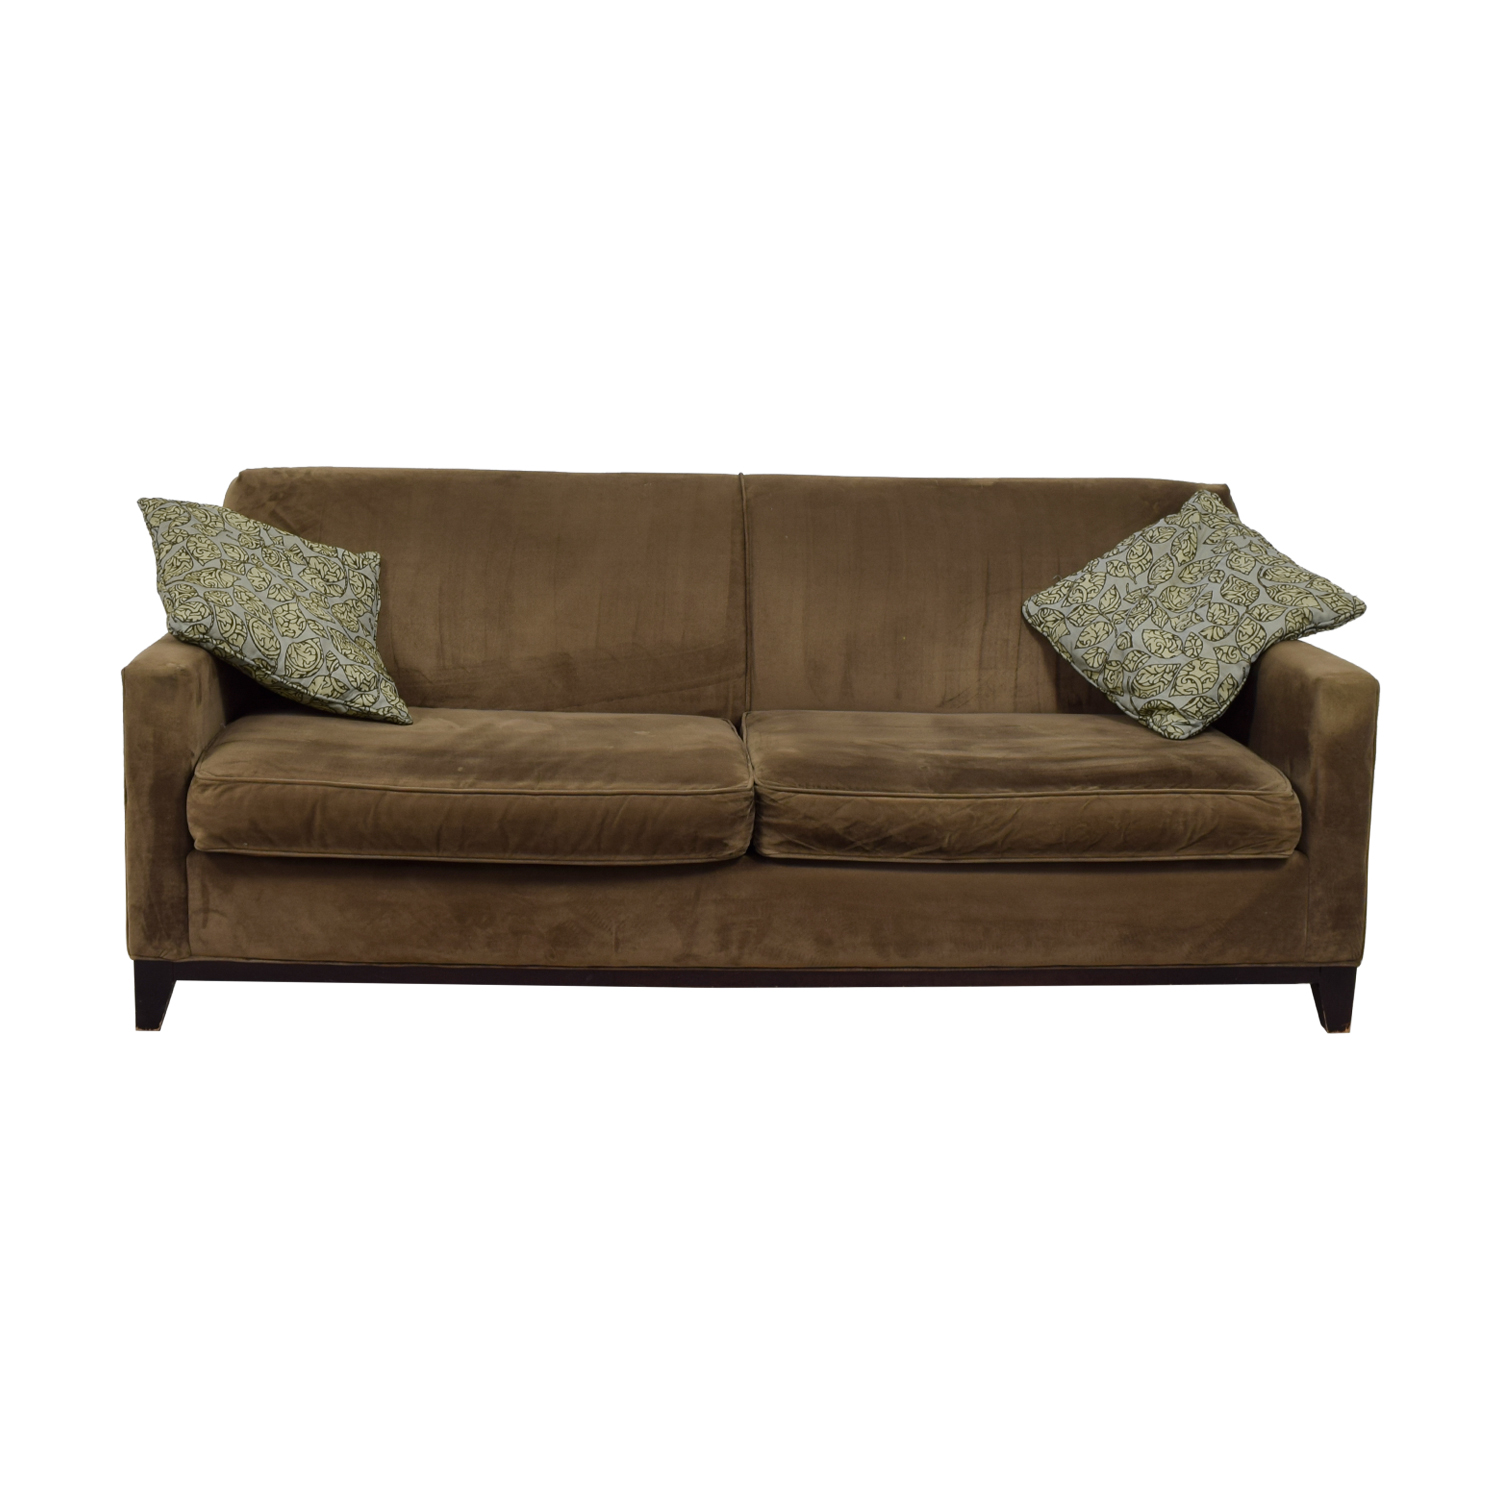 90 Off Rowe Furniture Martin Two Cushion Sofa Sofas